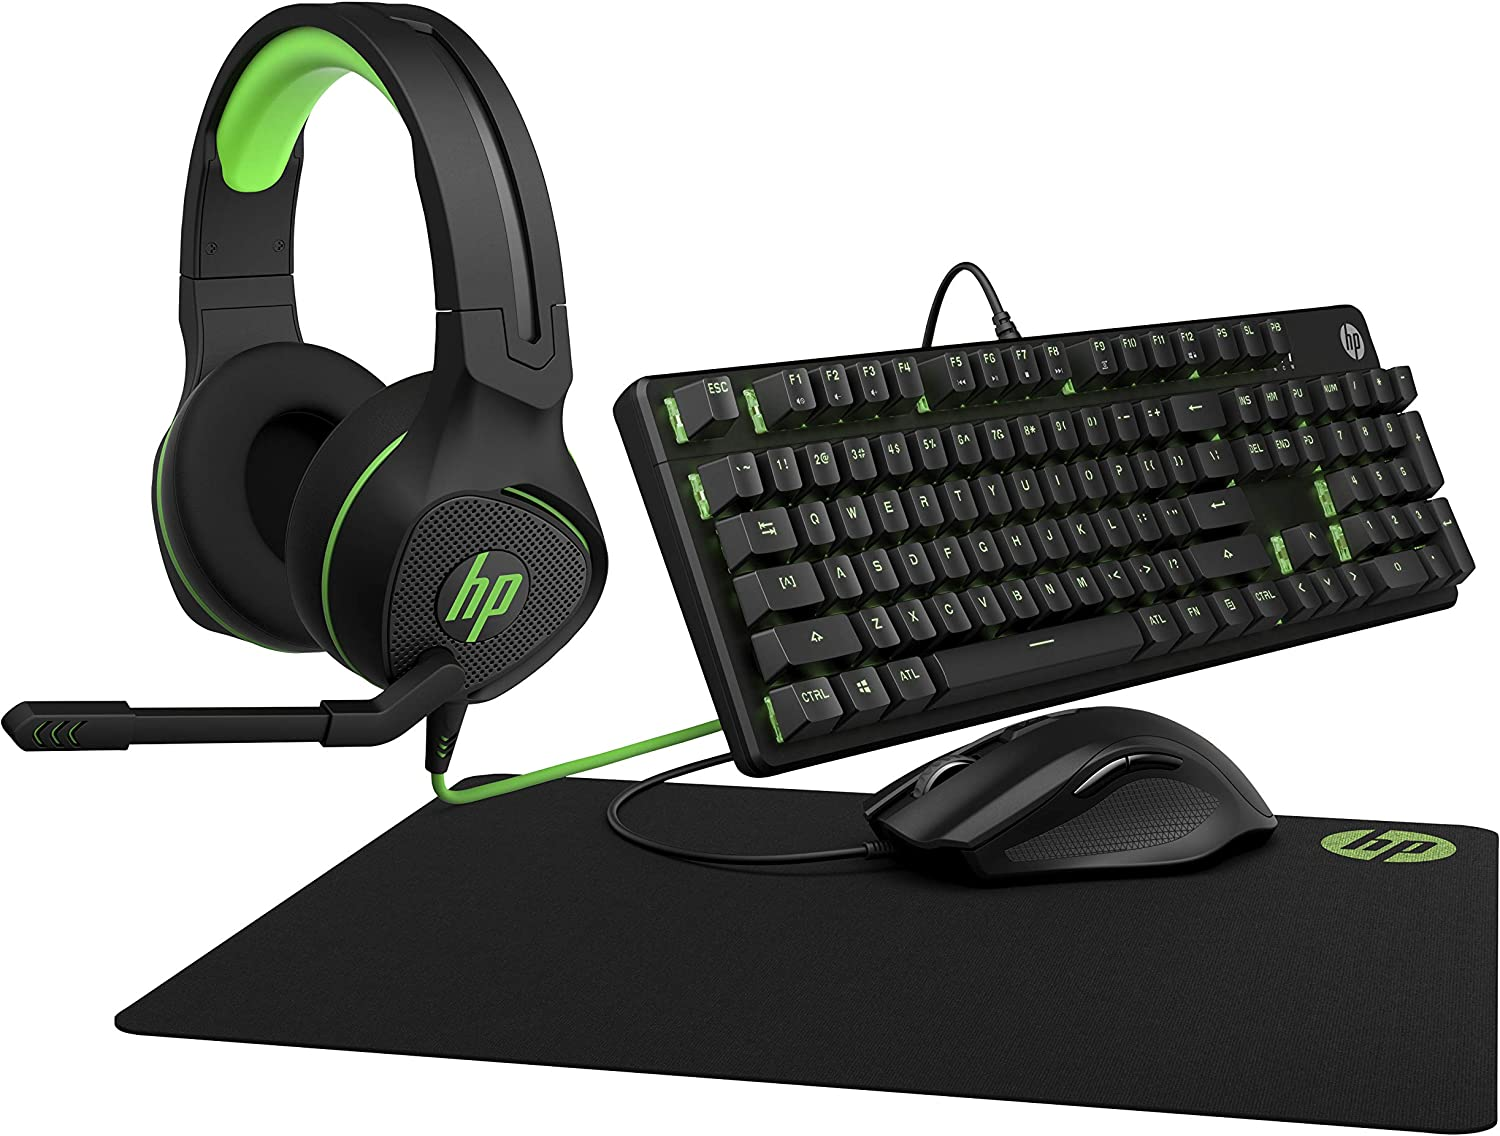 HP Gaming Bundle | Includes OMEN by HP Mouse 400, HP Pavilion Gaming Keyboard 500, HP Pavilion Gaming Headset 400, and HP Pavilion Gaming Mouse Pad 300 | Wired, RGB Lighting, 1-Yr Warranty, Black